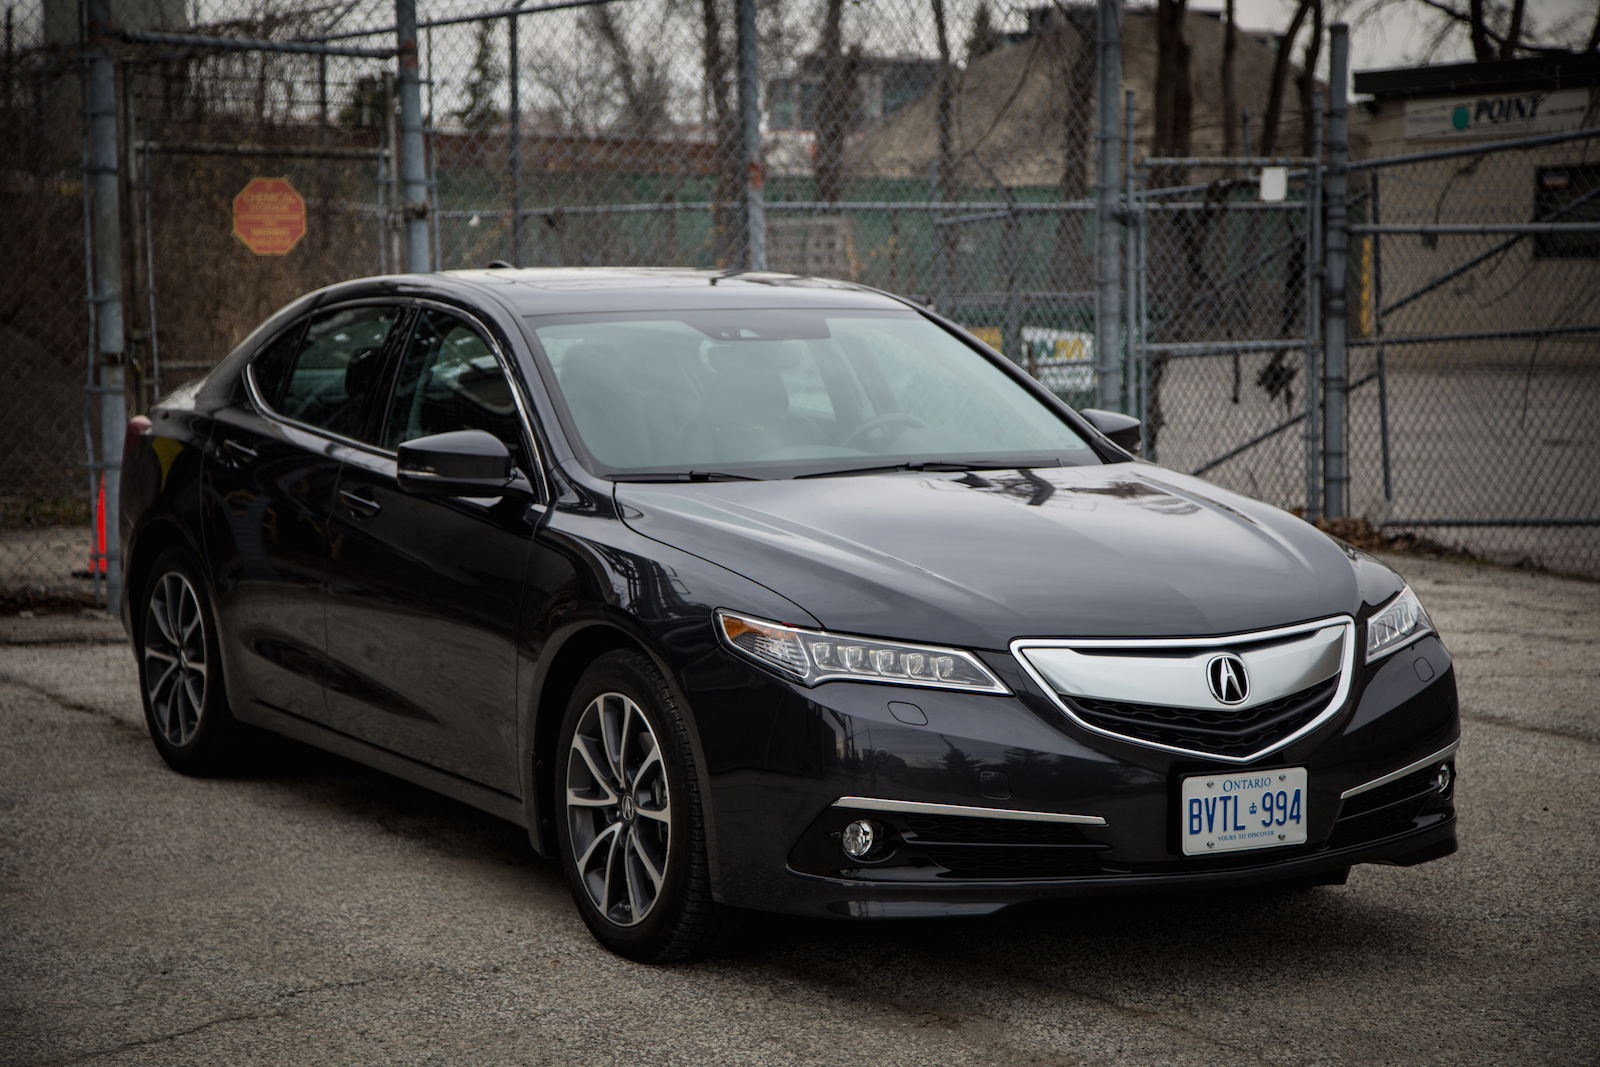 review show awd tlx drive first front a more magazine three acura spec automobile news quarters sh